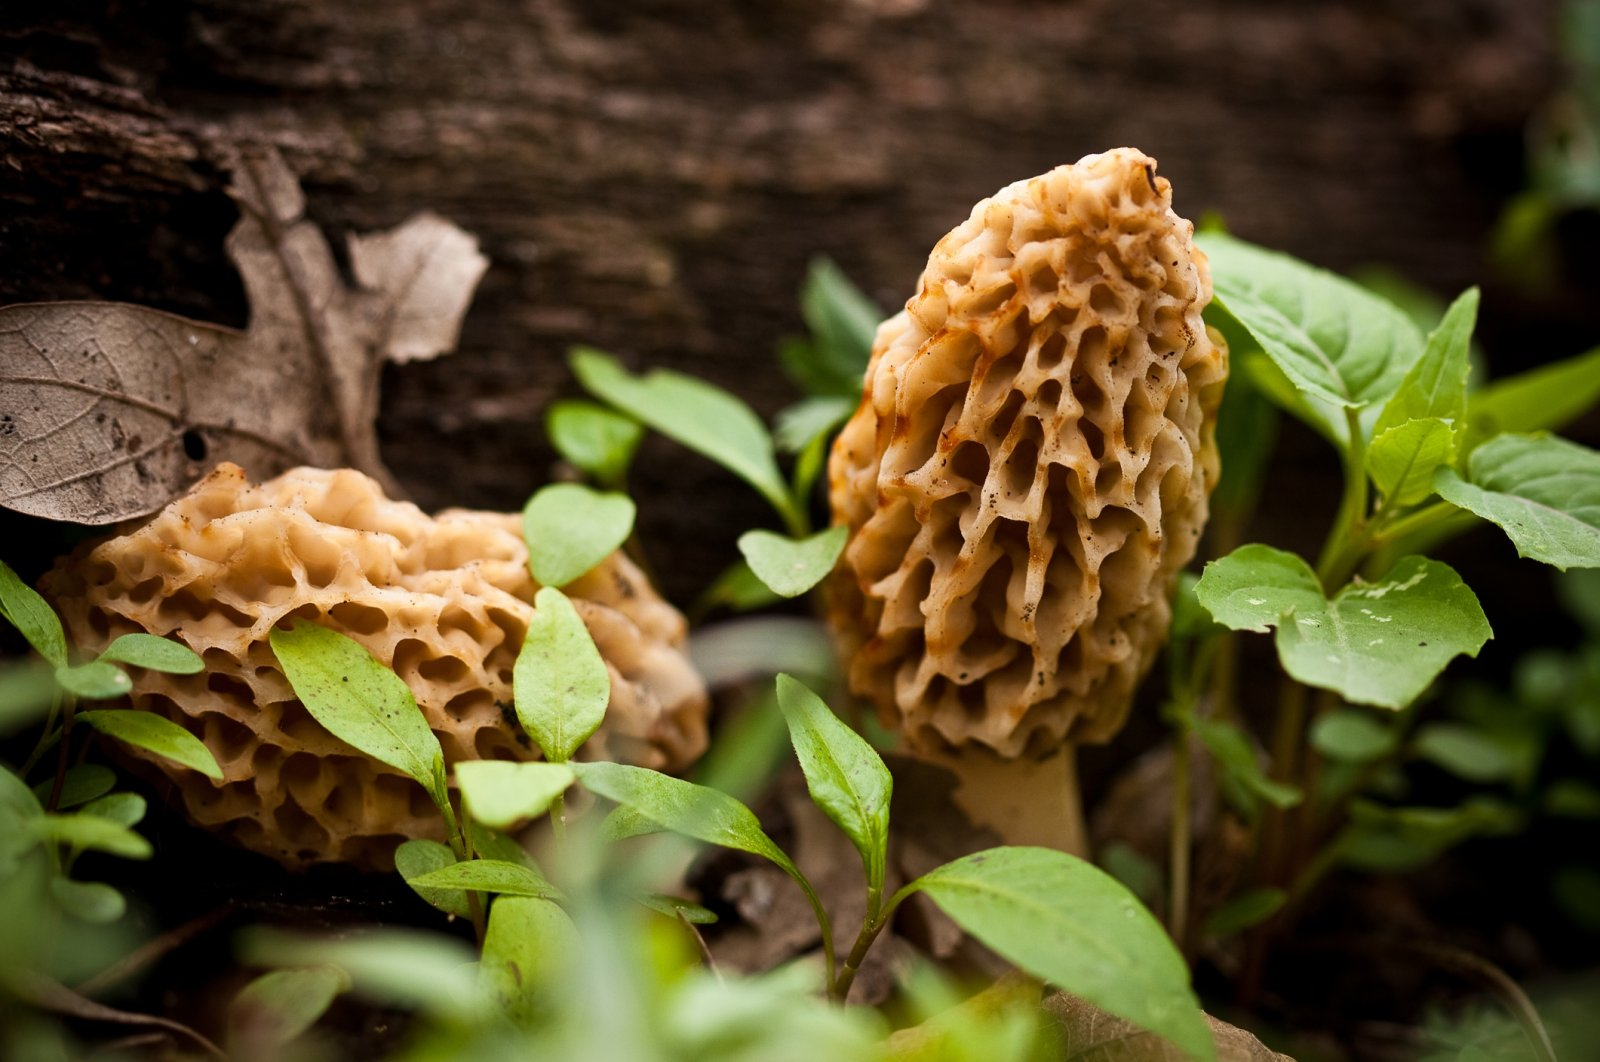 Grown in forests, morels are one of the most desired wild mushrooms in the world. (iStock Photo)